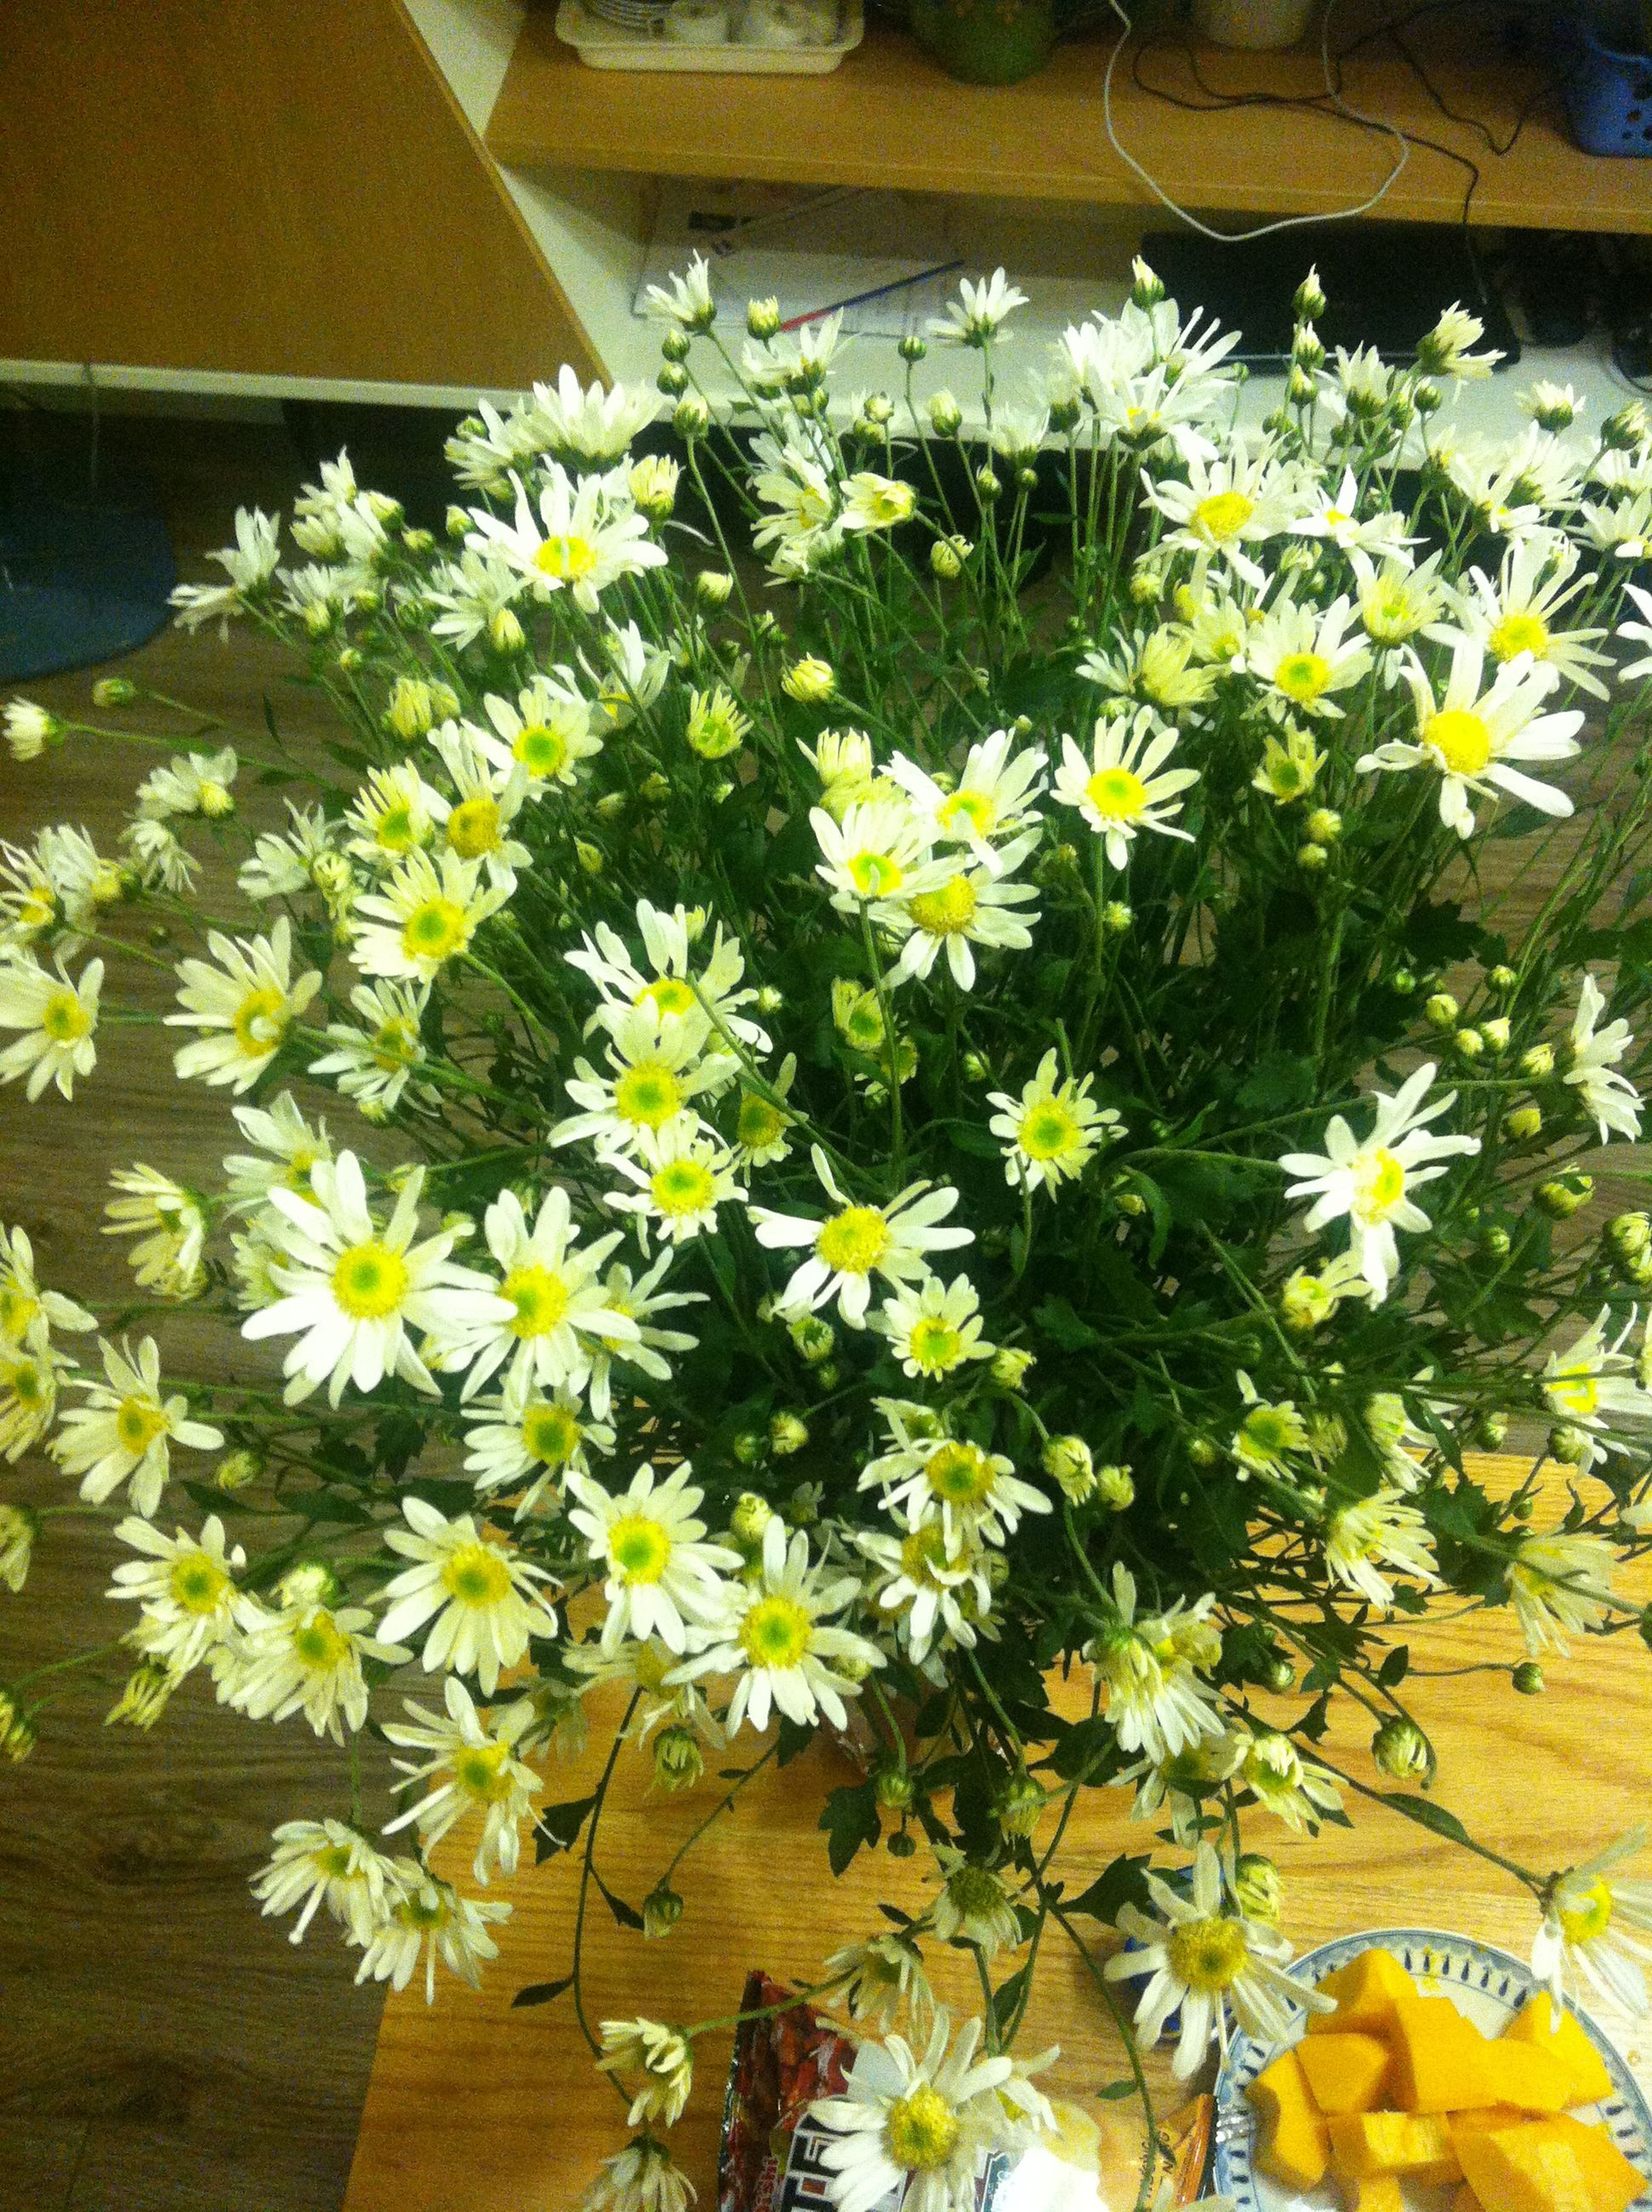 flower, freshness, petal, growth, fragility, white color, plant, high angle view, flower head, yellow, beauty in nature, leaf, nature, wood - material, blooming, daisy, no people, potted plant, day, close-up